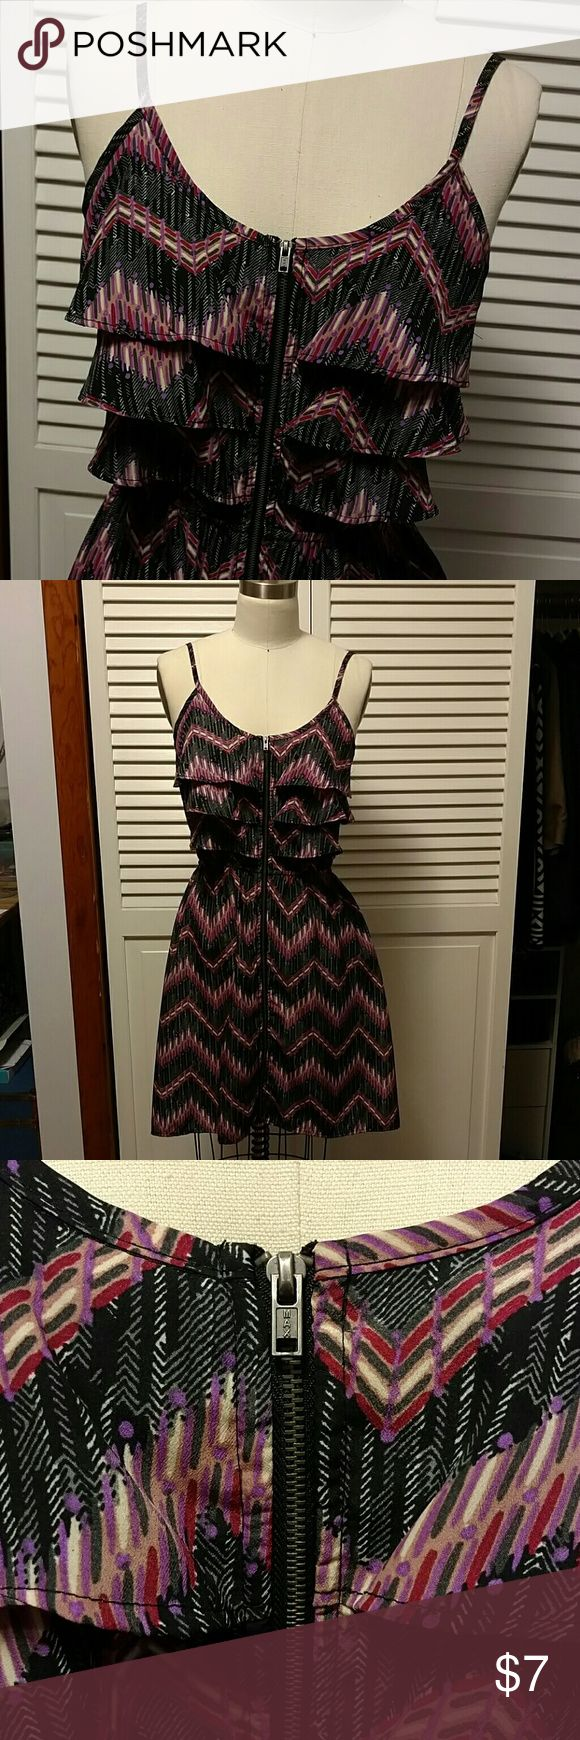 Xhiliration aztec chevron print ruffle zip dress Xhiliration aztec chevron print ruffle zip dress. Lightweight dress with aline slight flare shape. Full zip front, adjustable straps. Great dress for going out, day time casual or even as an easy beach cover up! Xhilaration Dresses